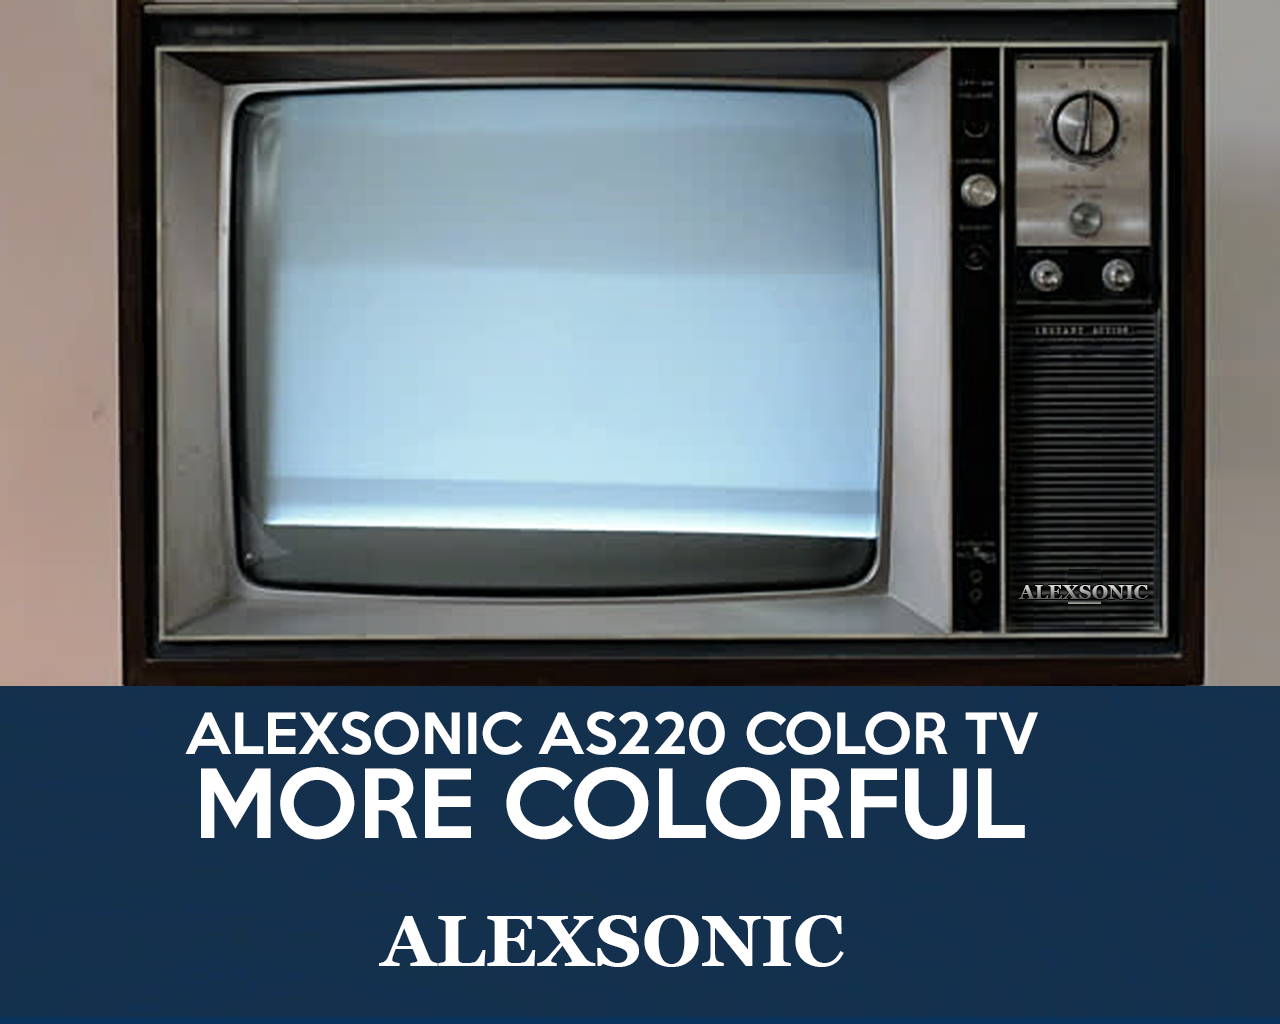 Alexsonic AS220 1968 commercial.png